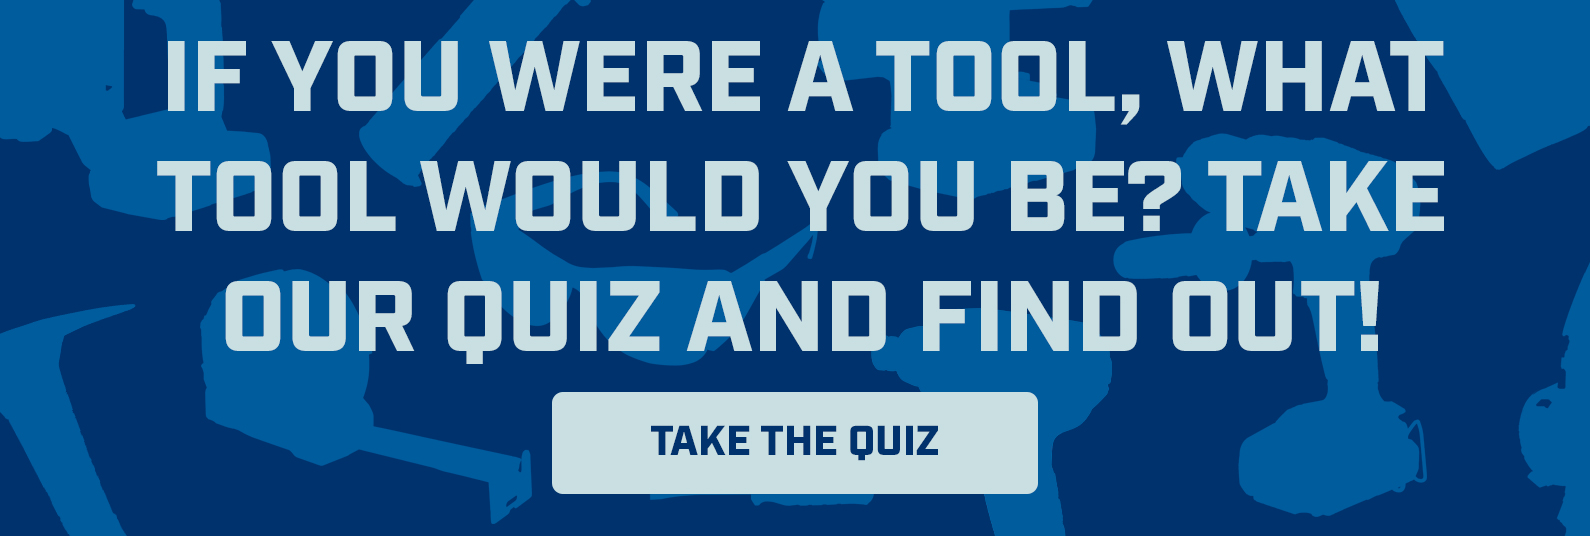 If you were a tool, what tool would you be? Take our quiz to find out!